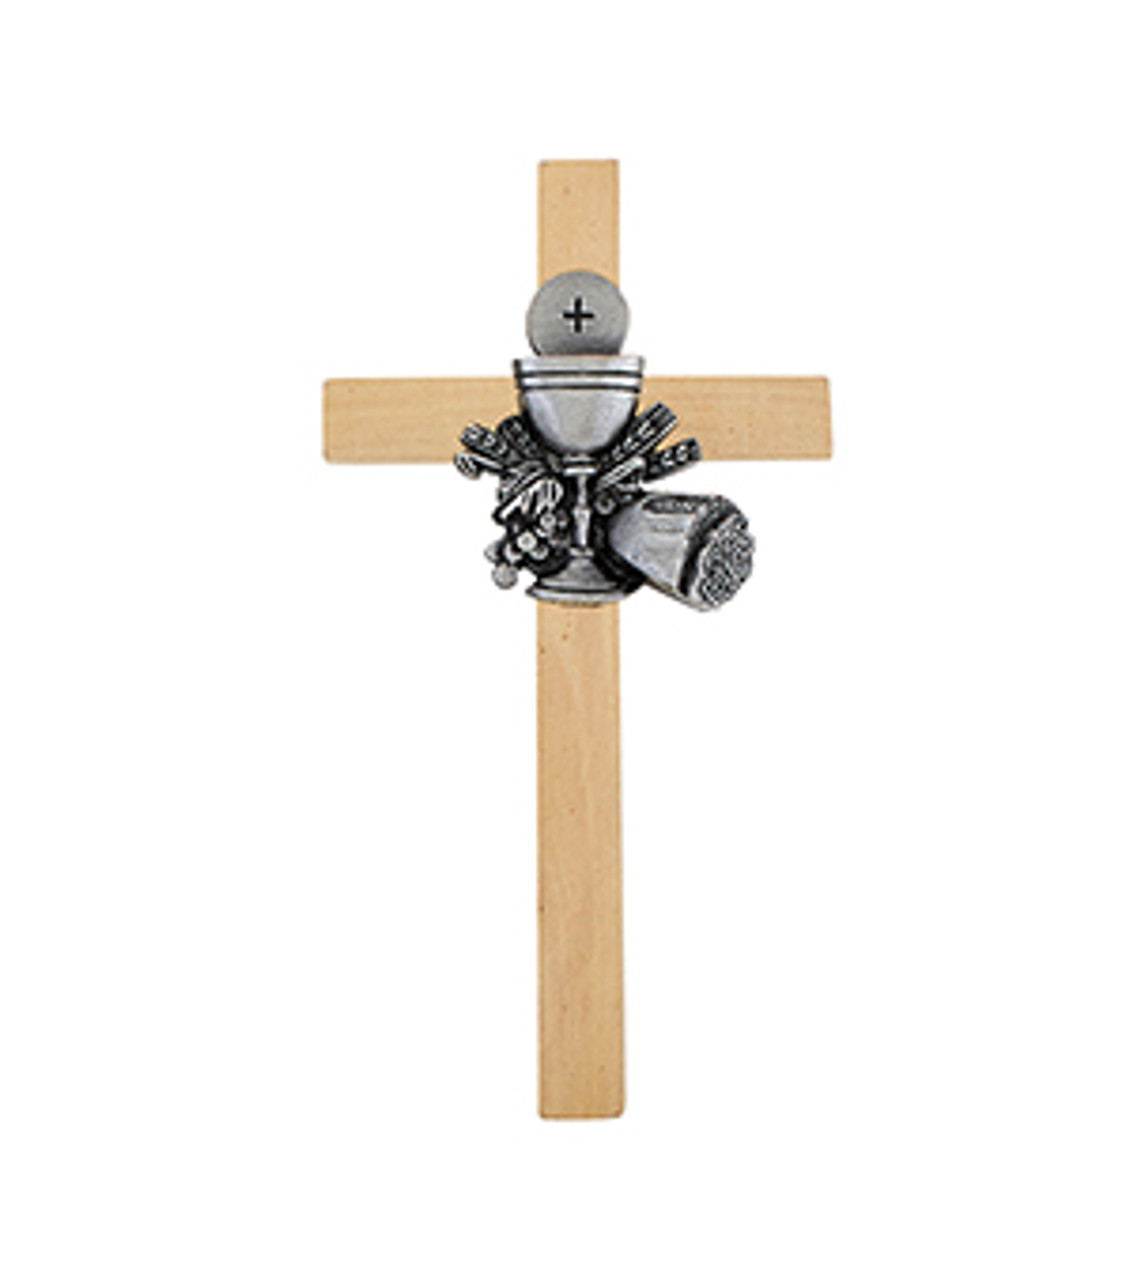 Chalice, Grapes, and Wheat First Communion Cross 6 inches Oak and Pewter